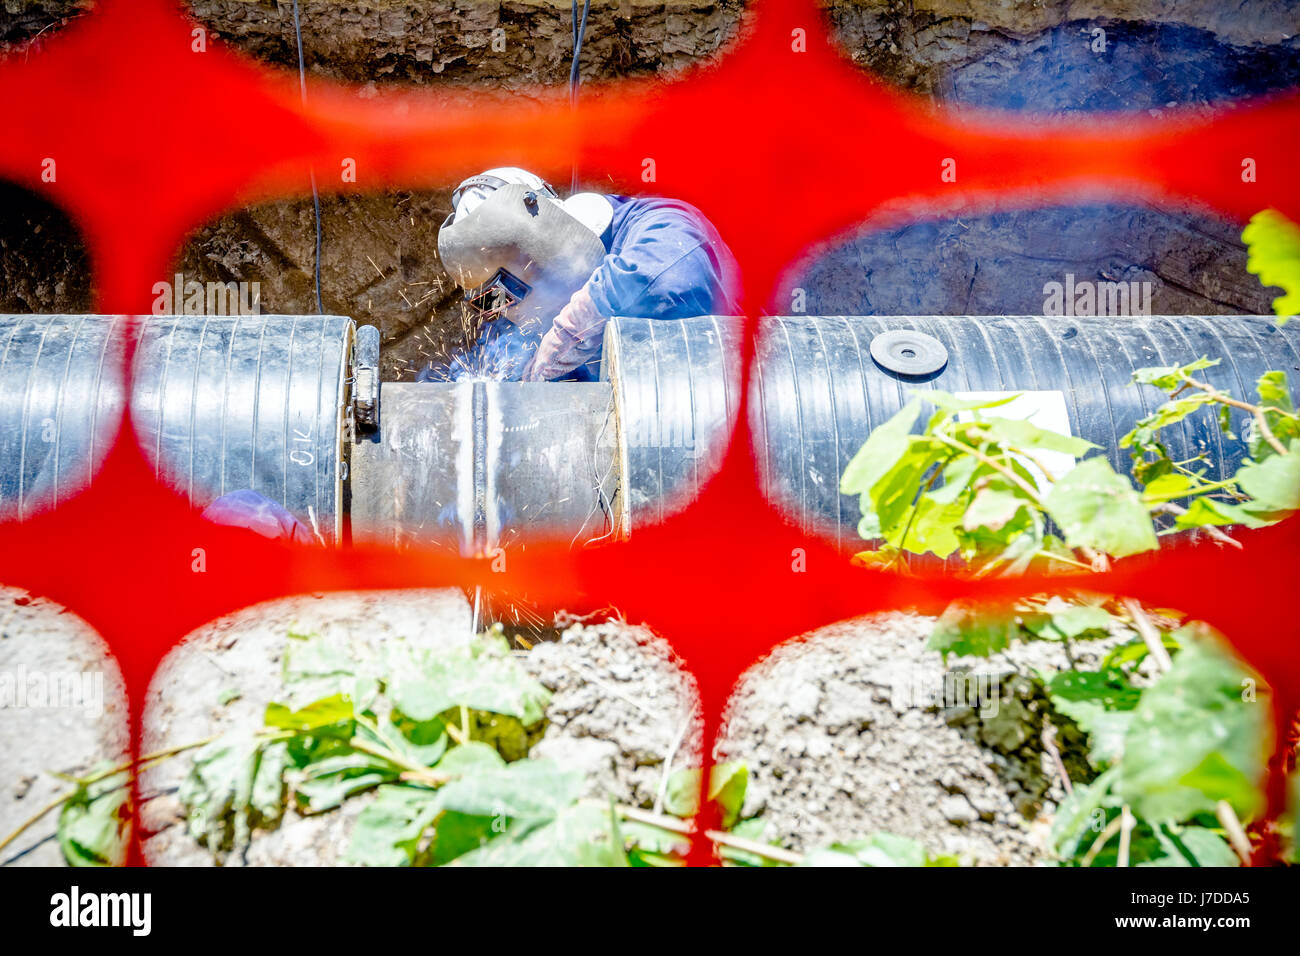 Welder is in trench arc welding pipeline. Confined space with orange, plastic, safety net - Stock Image